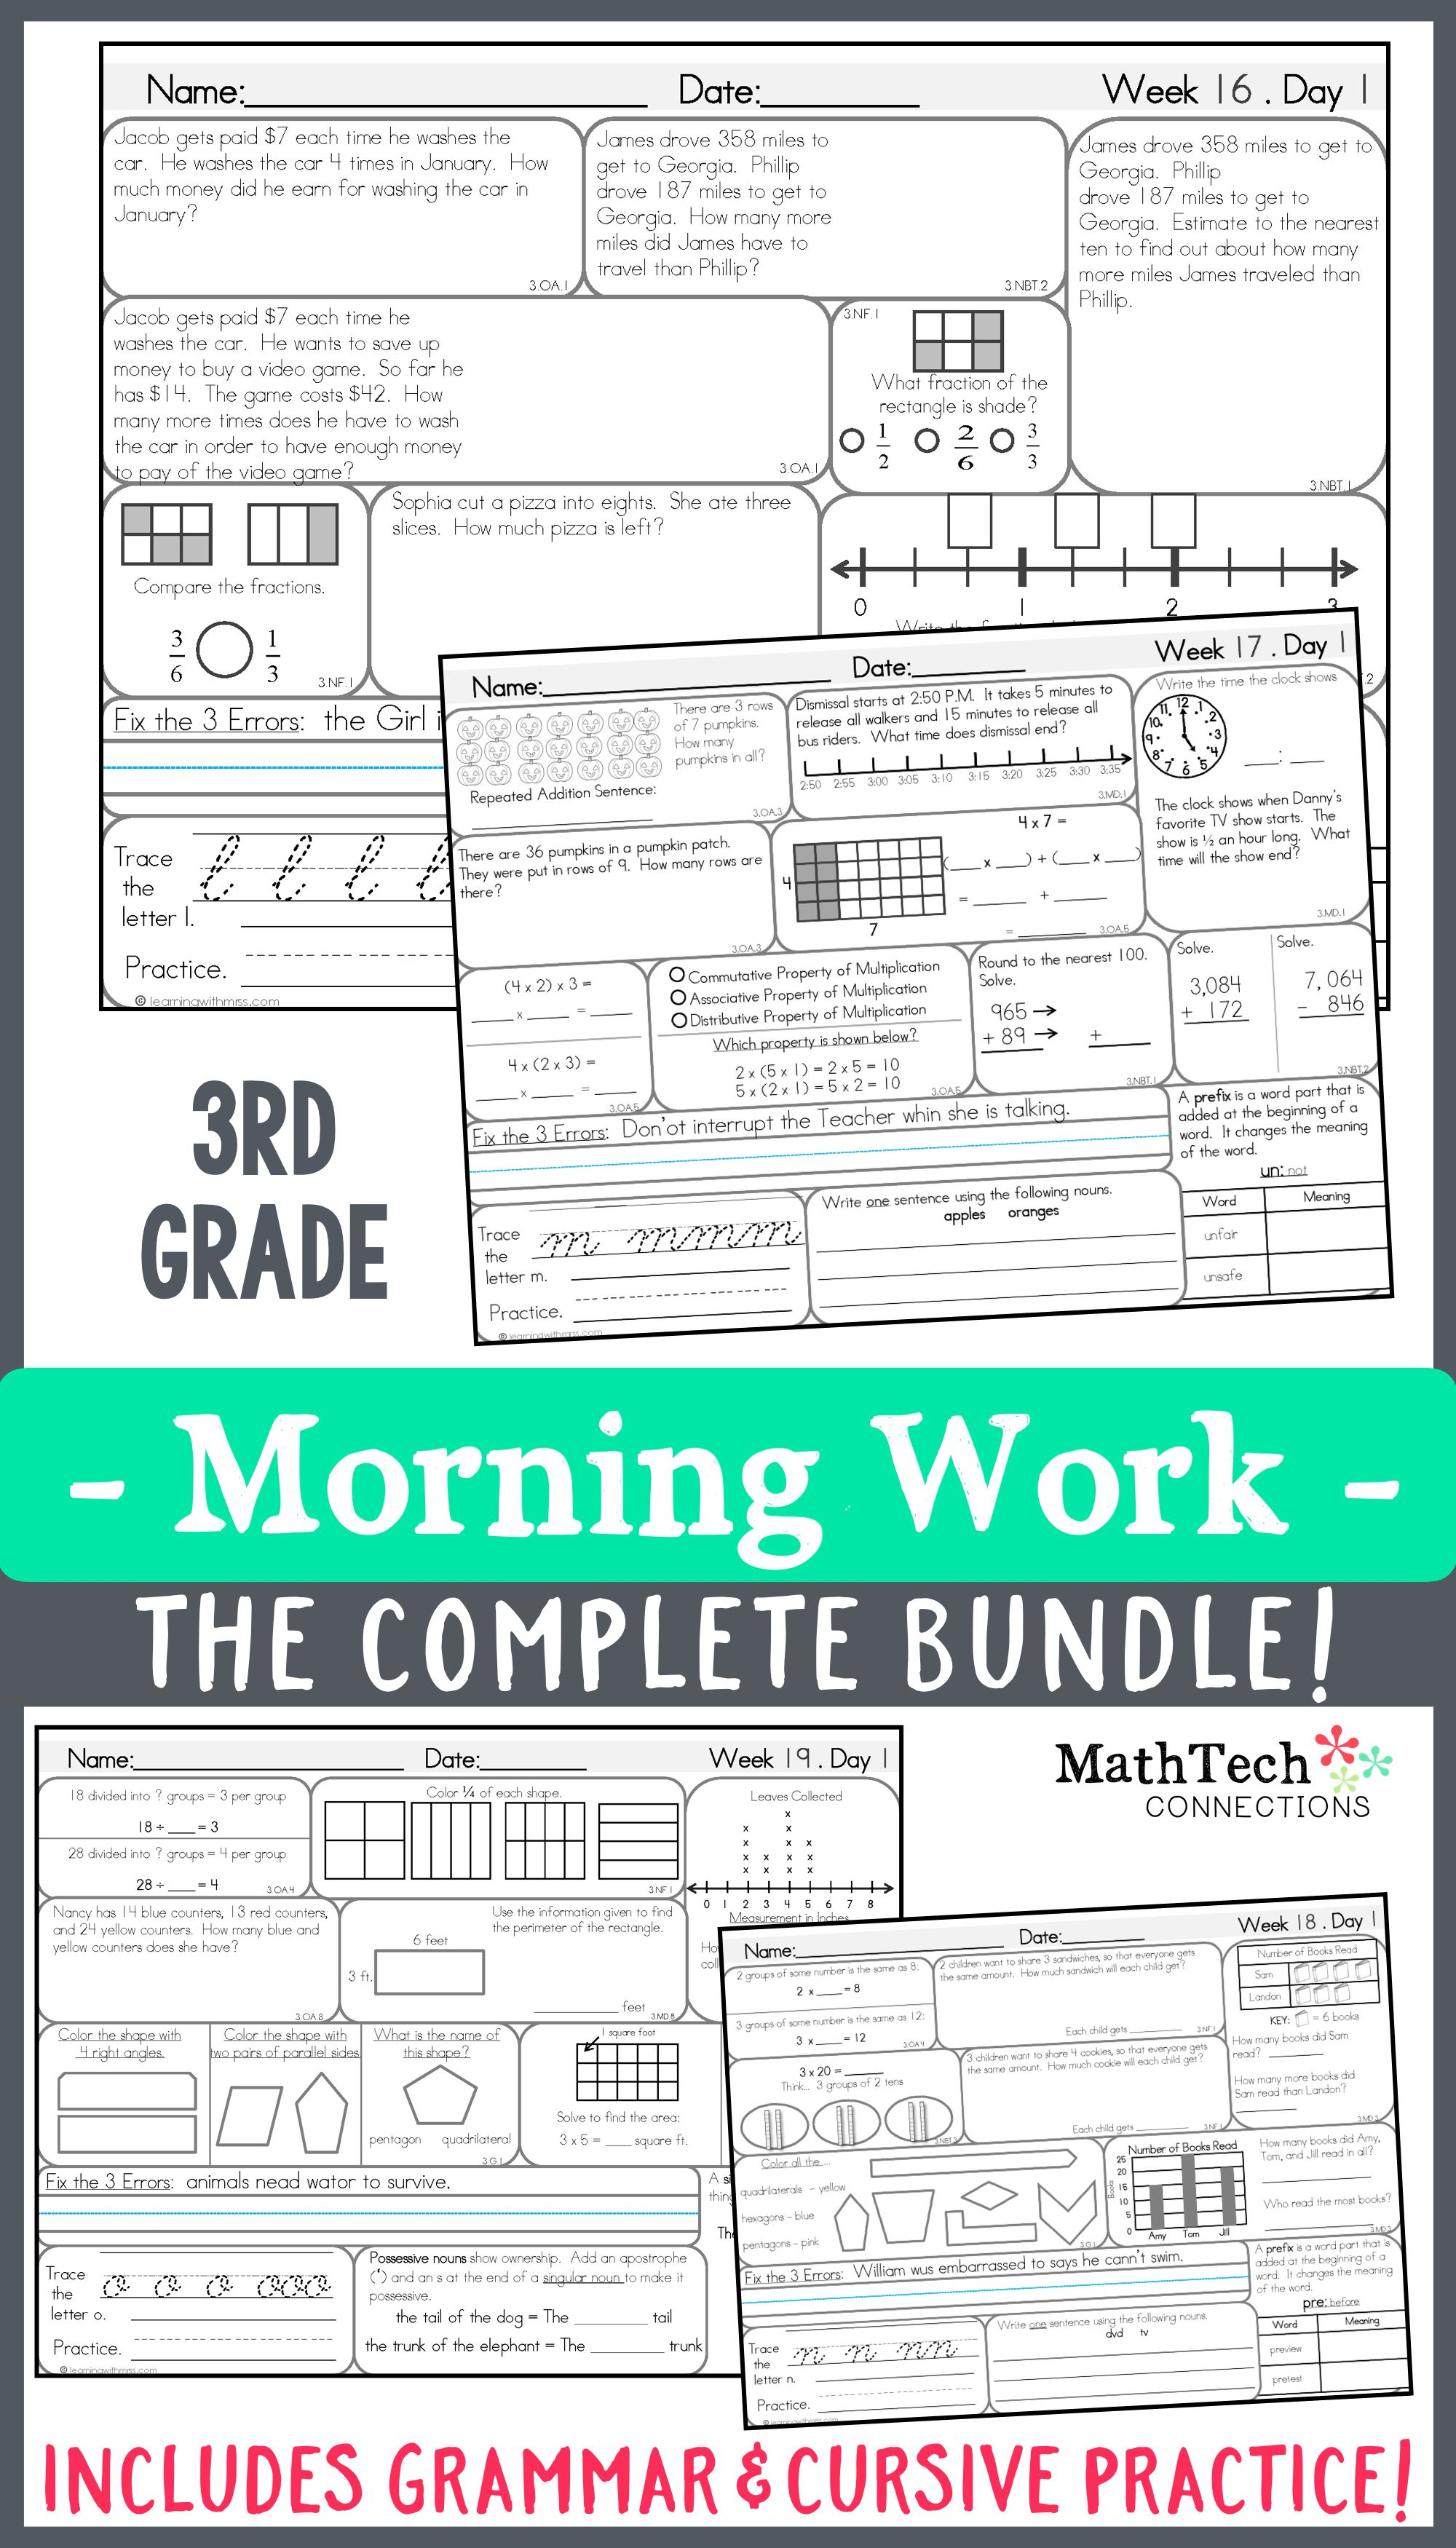 3rd Grade Morning Work Homework Spiral Review Math